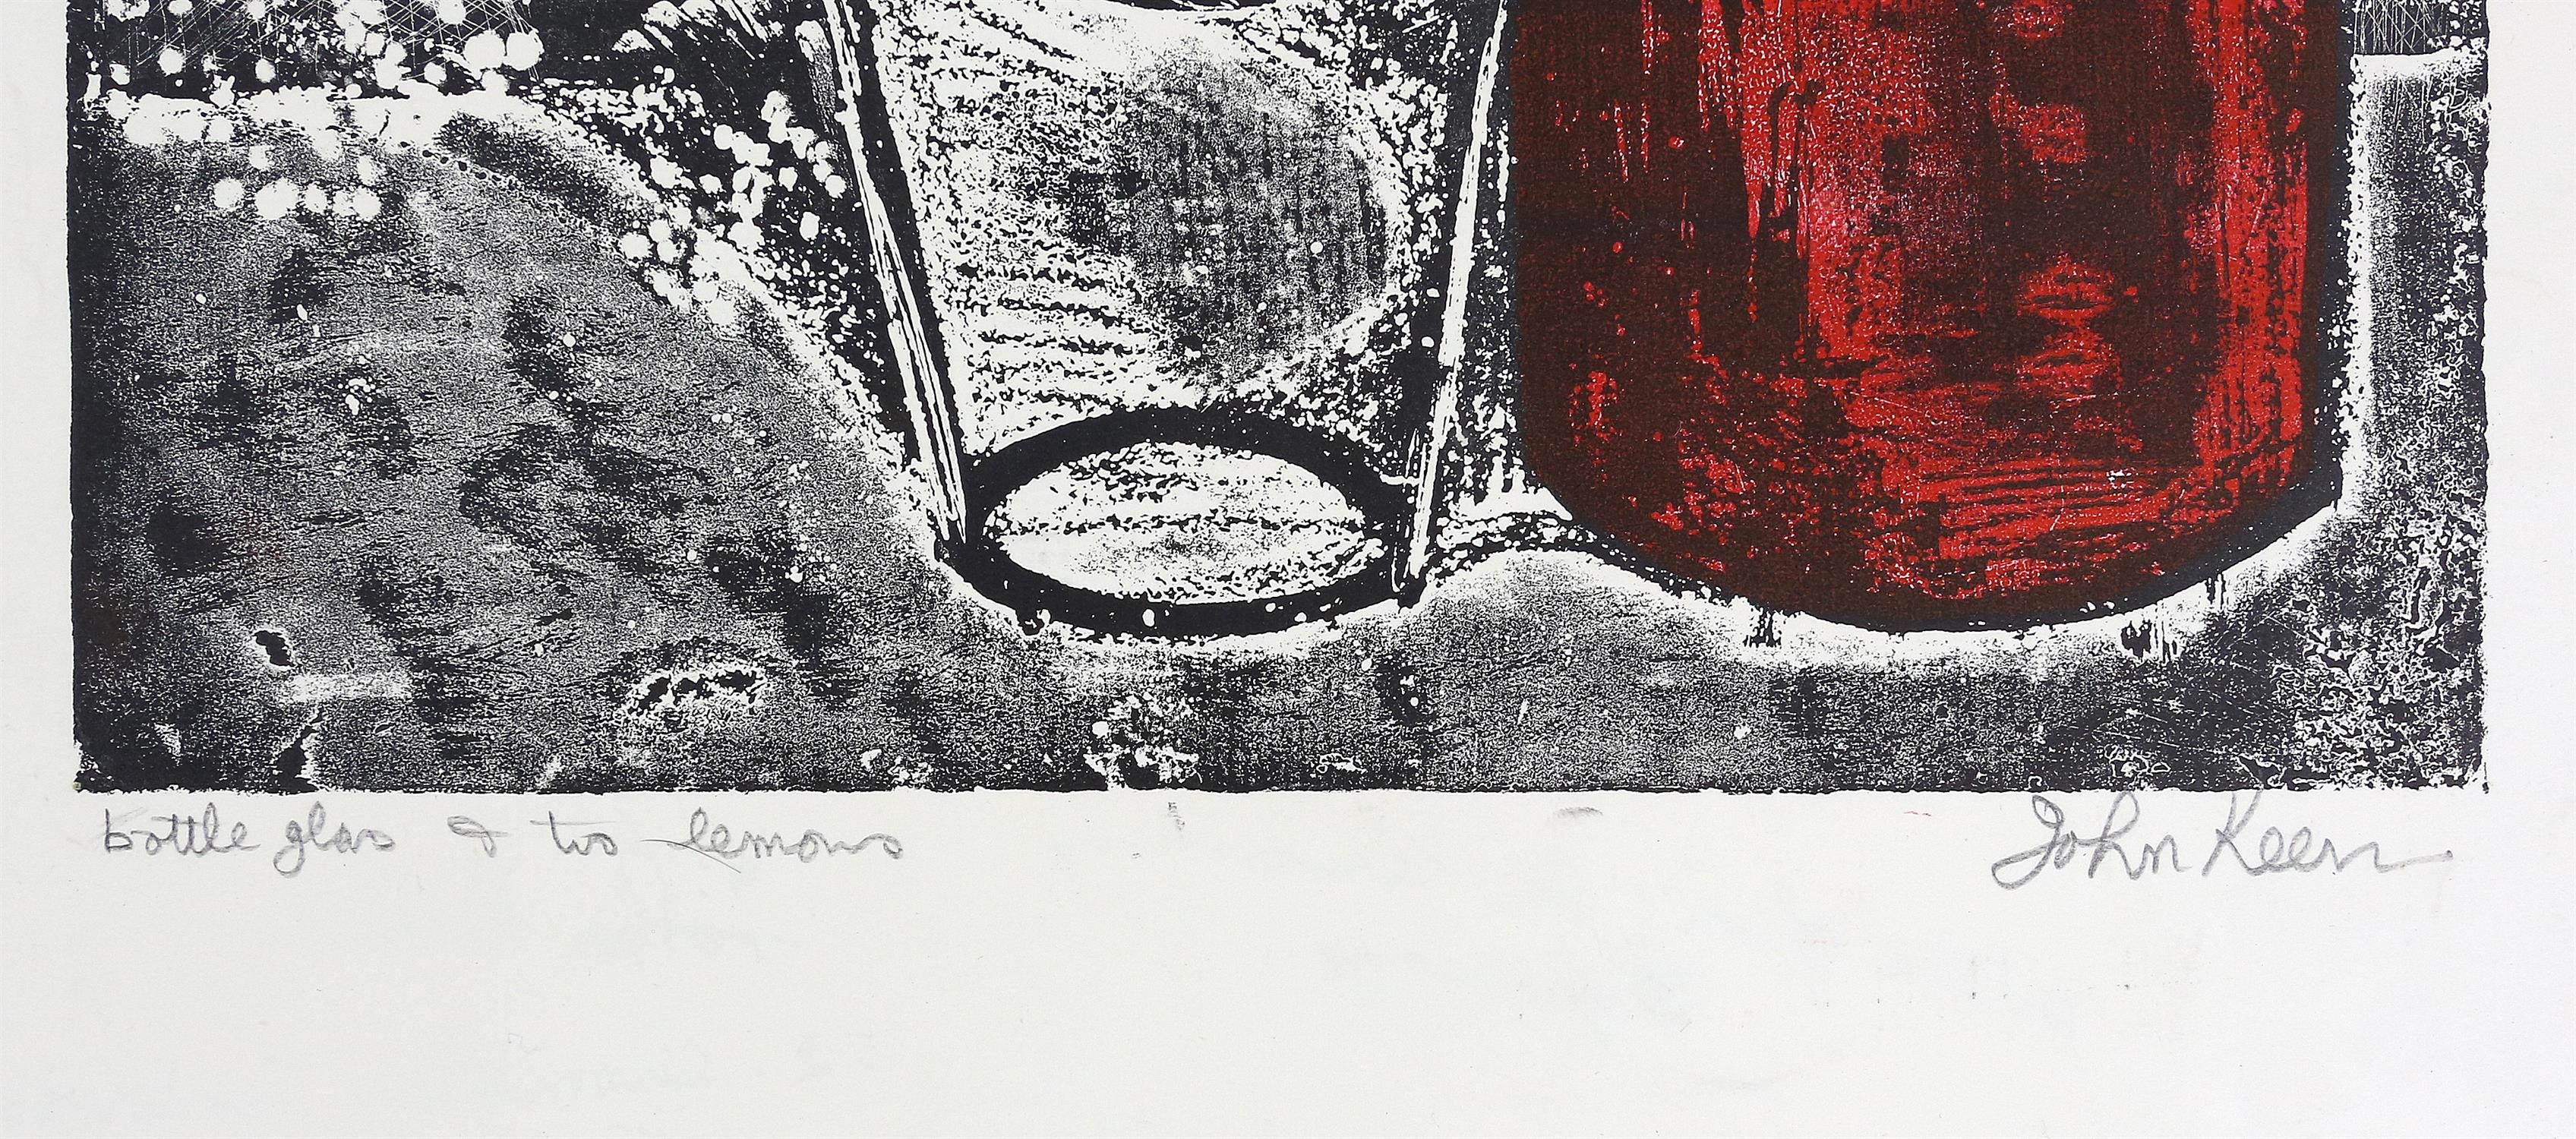 John Keen (British, 1924-2019). 'Bottle Glass & Two Lemons', print in colours, signed and titled. - Image 3 of 3